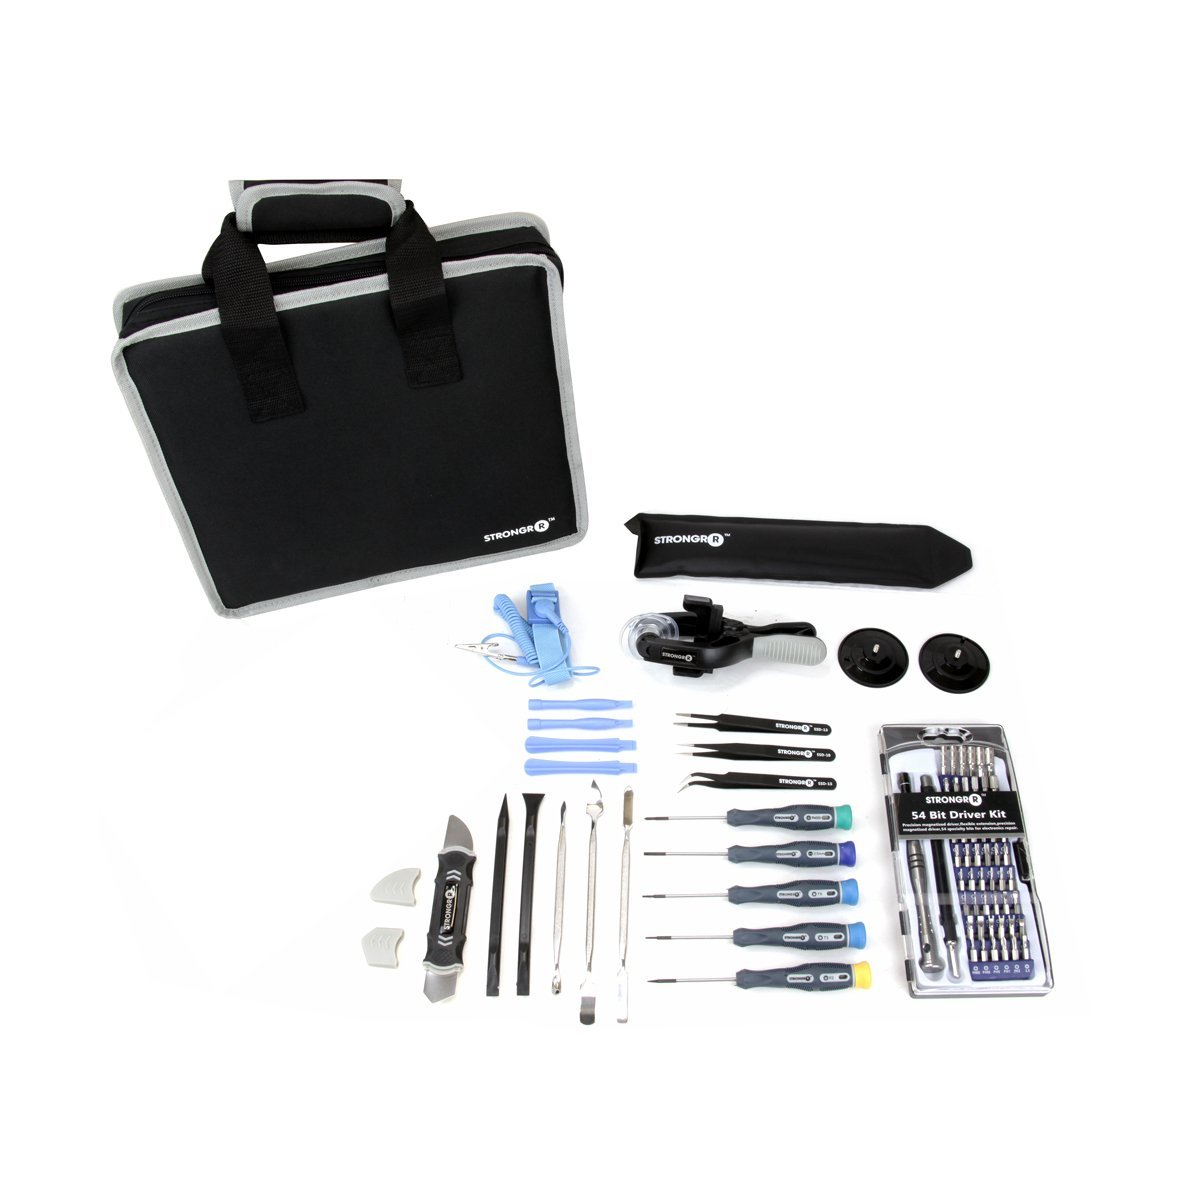 "LB1 High Performance Pro Tech Complete Professional Precision Disassembly Tool Kit for Repairing HP 14.1"" Business Notebook Notebook 3 GB Memory 160 GB Hard Drive Silver HP6530bBC5-0083 Hand Tool Set"